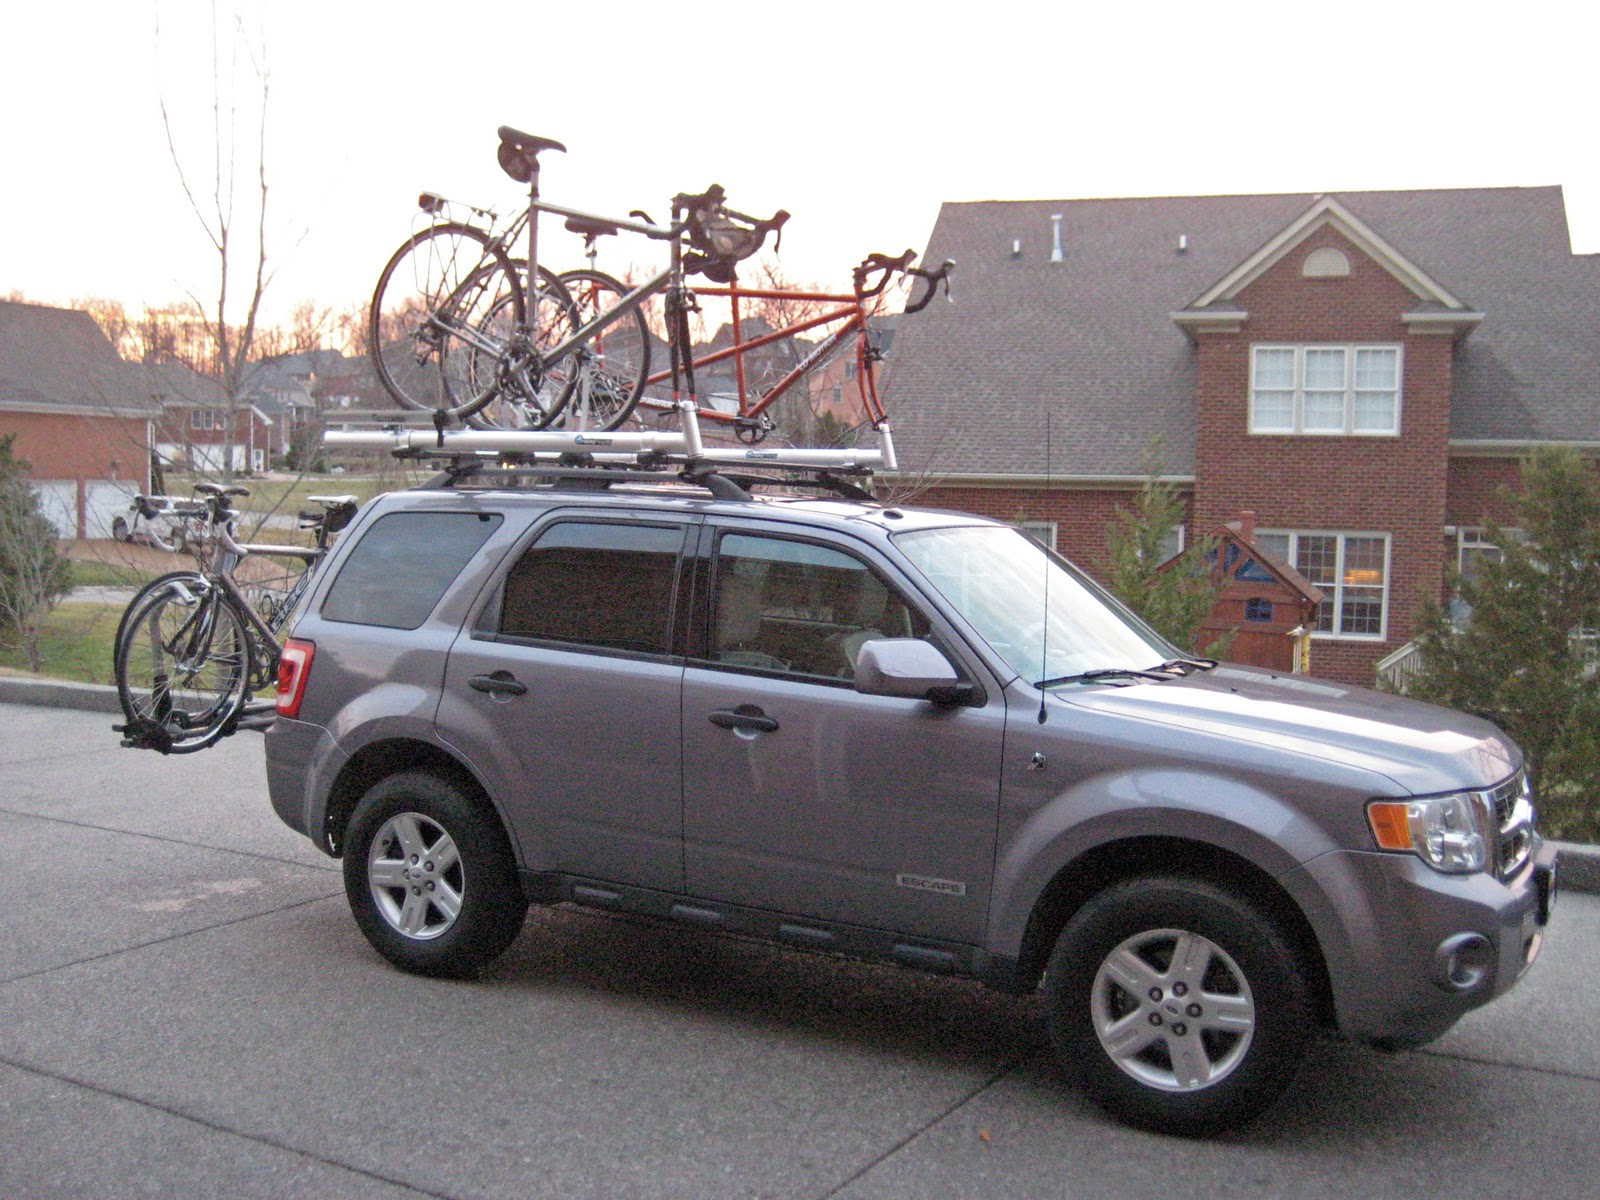 It S A 2008 Ford Escape Suv Got Lots Of Bike Room On The Roof